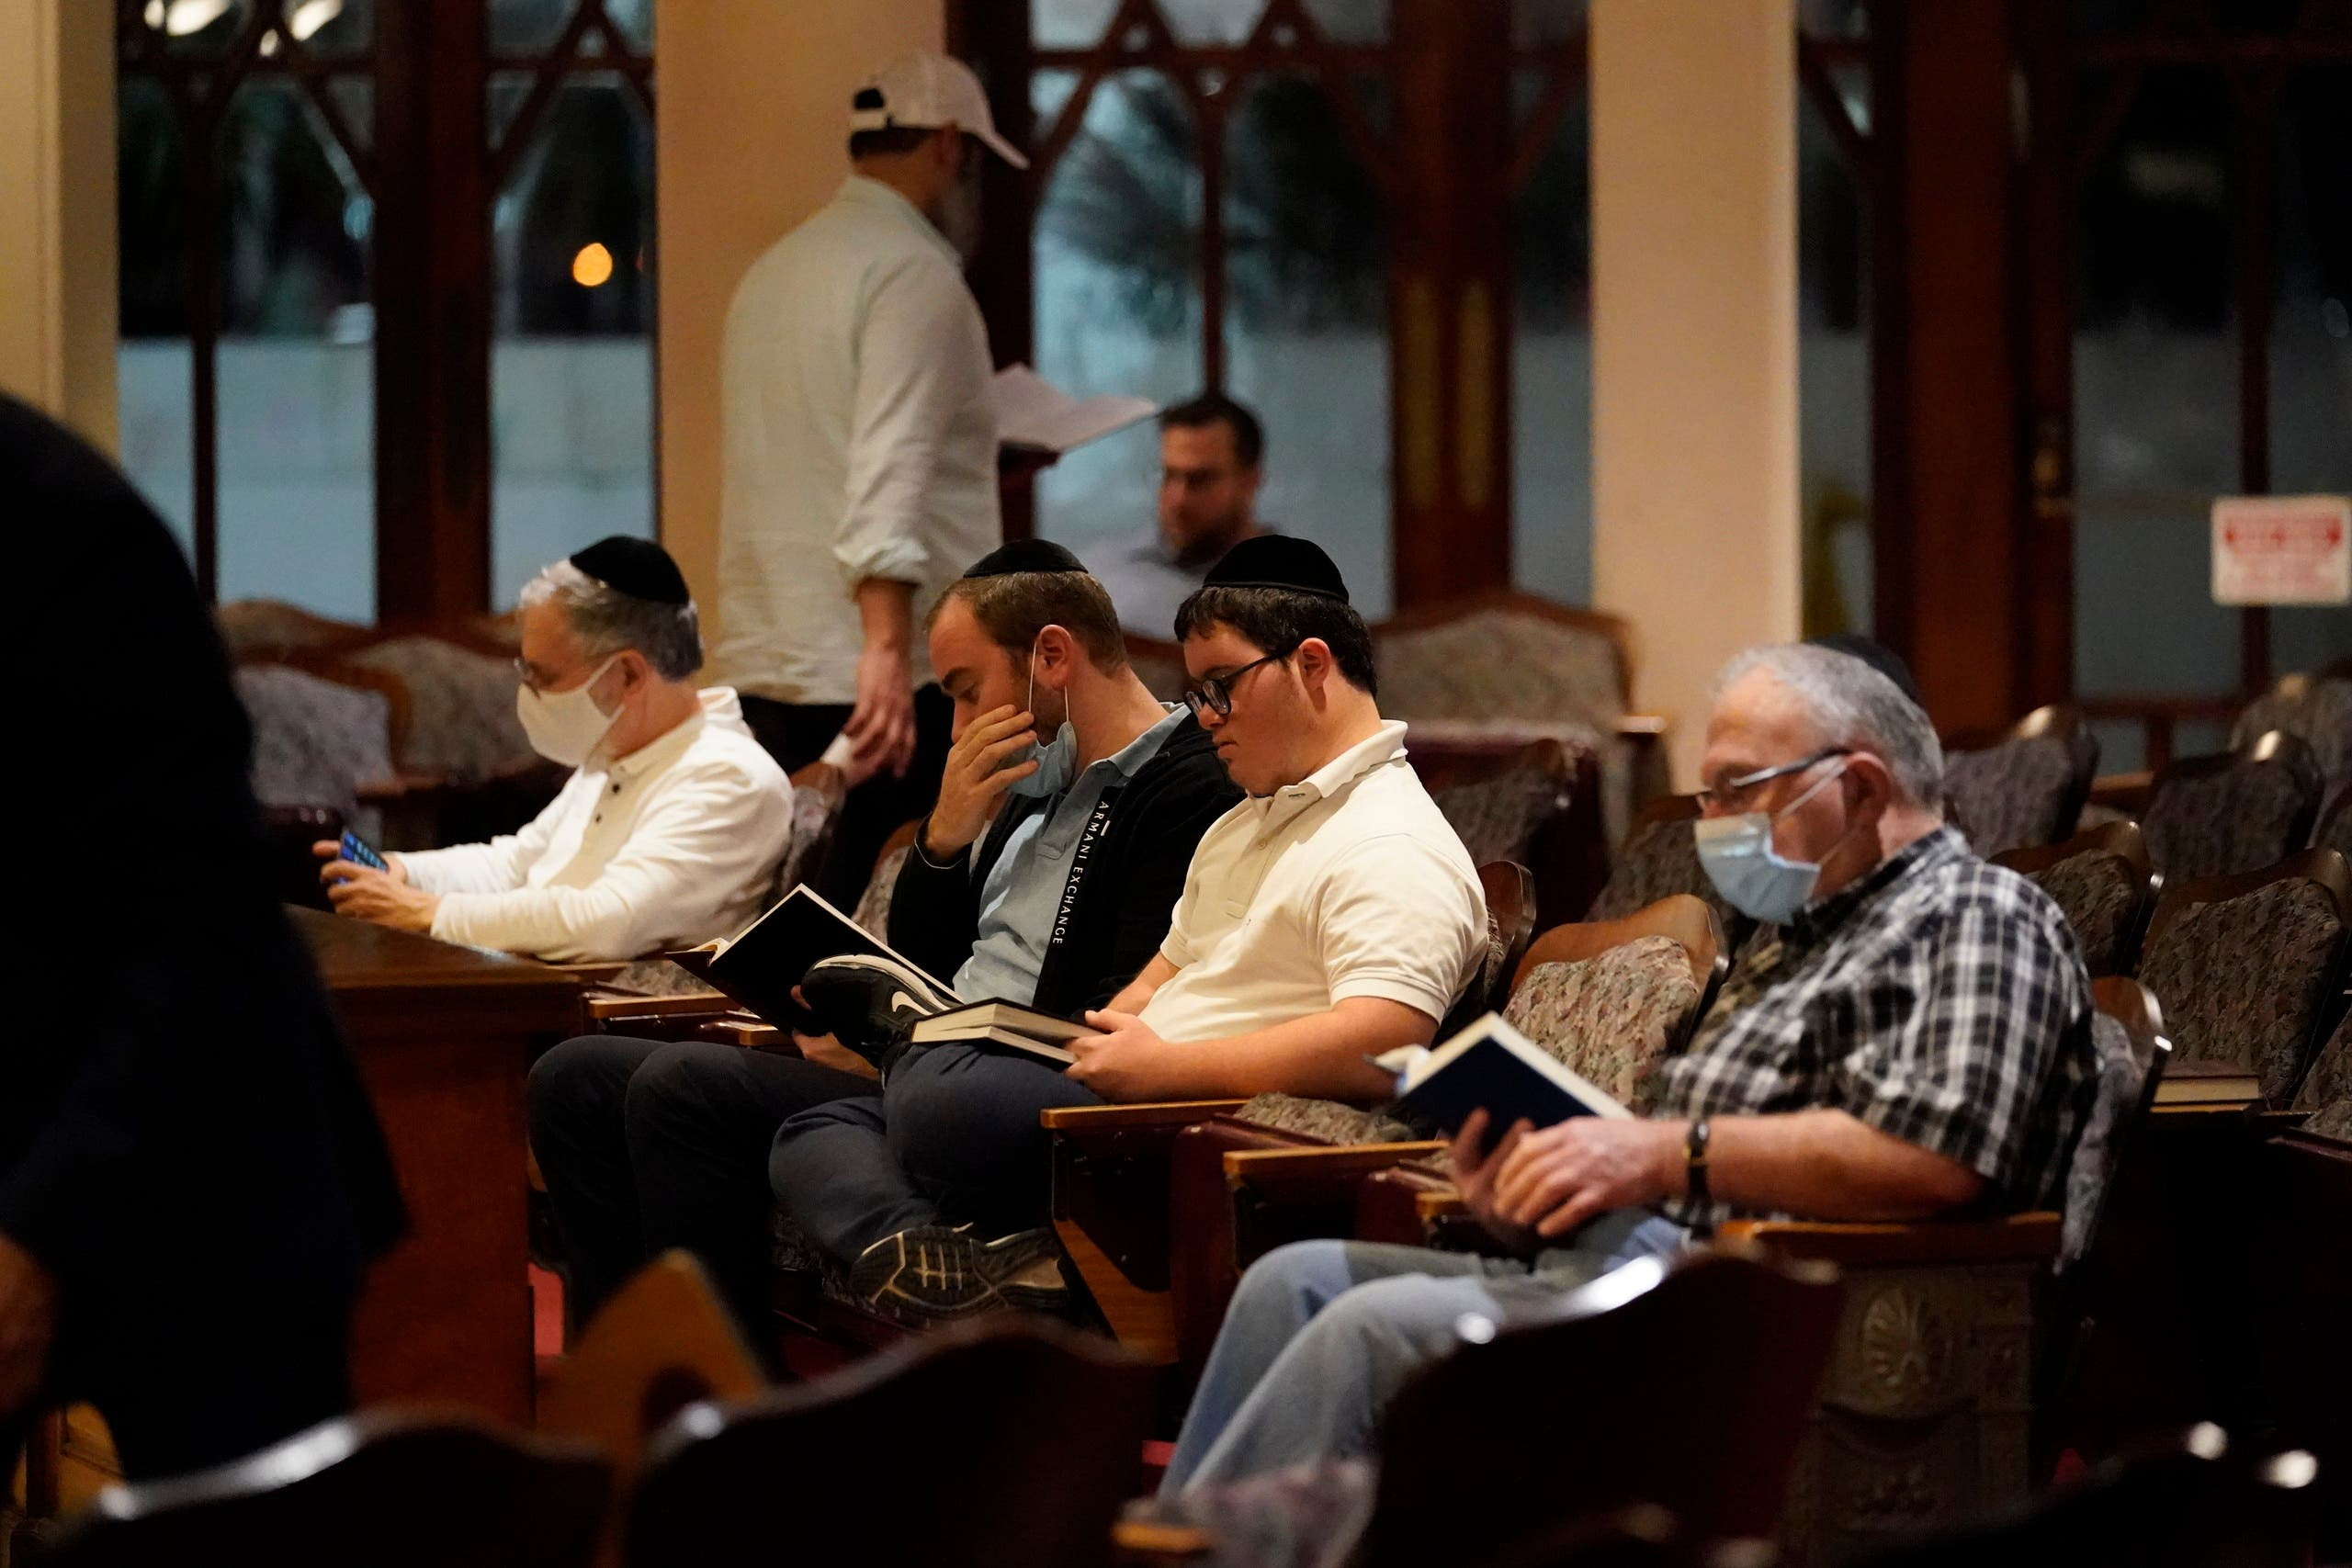 Jewish faithful pray at the Shul of Bal Harbour after members of the community were reported missing in the partial collapse of a 12-story beachfront condo, Thursday, June 24, 2021, in the Surfside area of Miami. (AP)